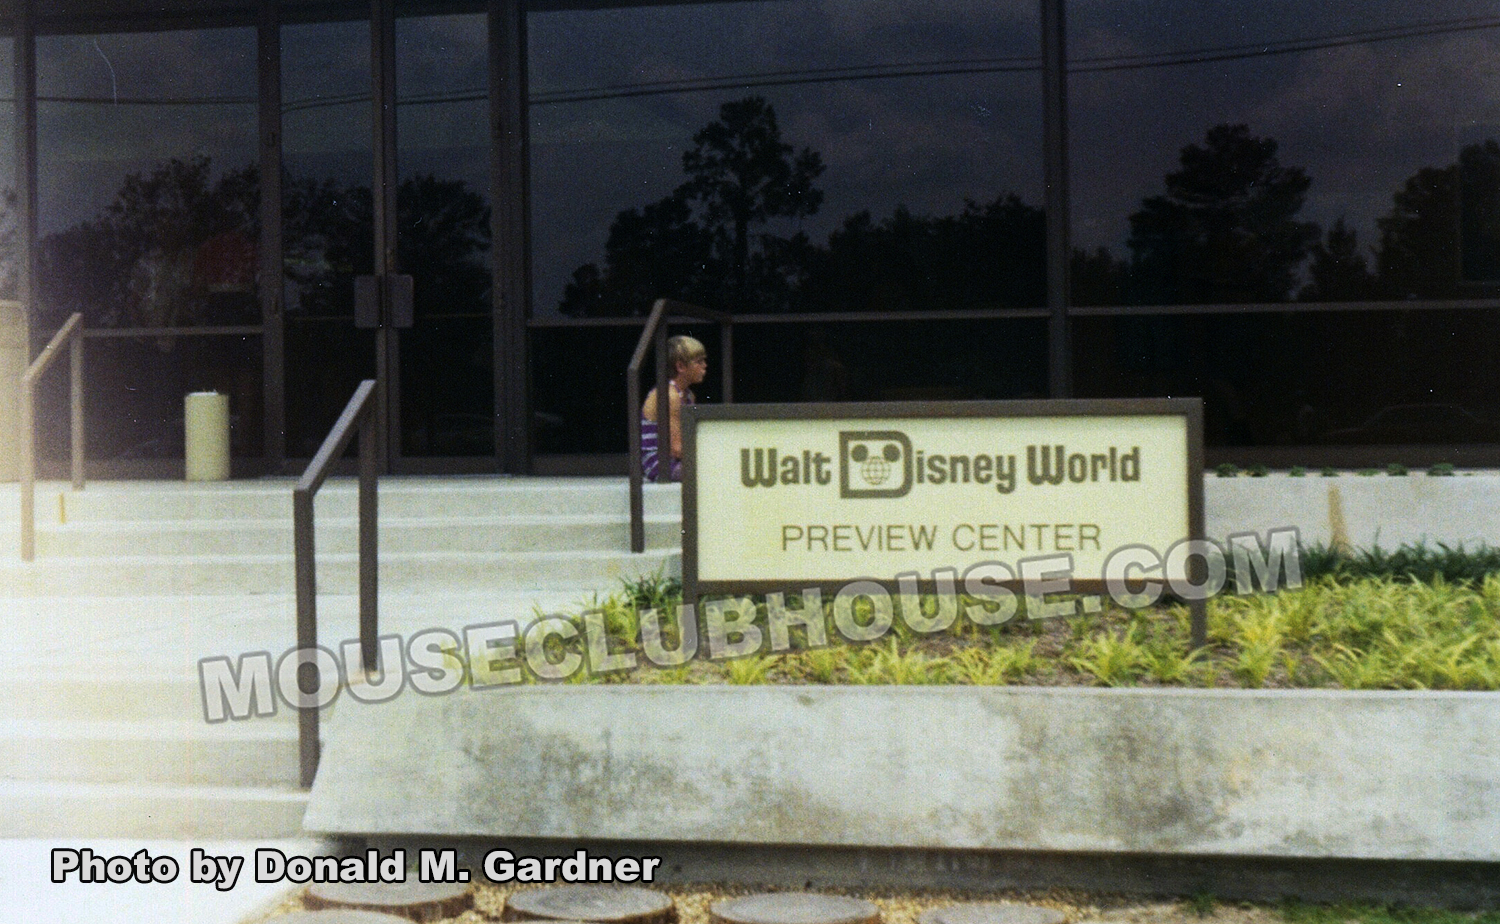 Walt Disney World Preview Center was established so the public could get a glimpse of the resort to come.